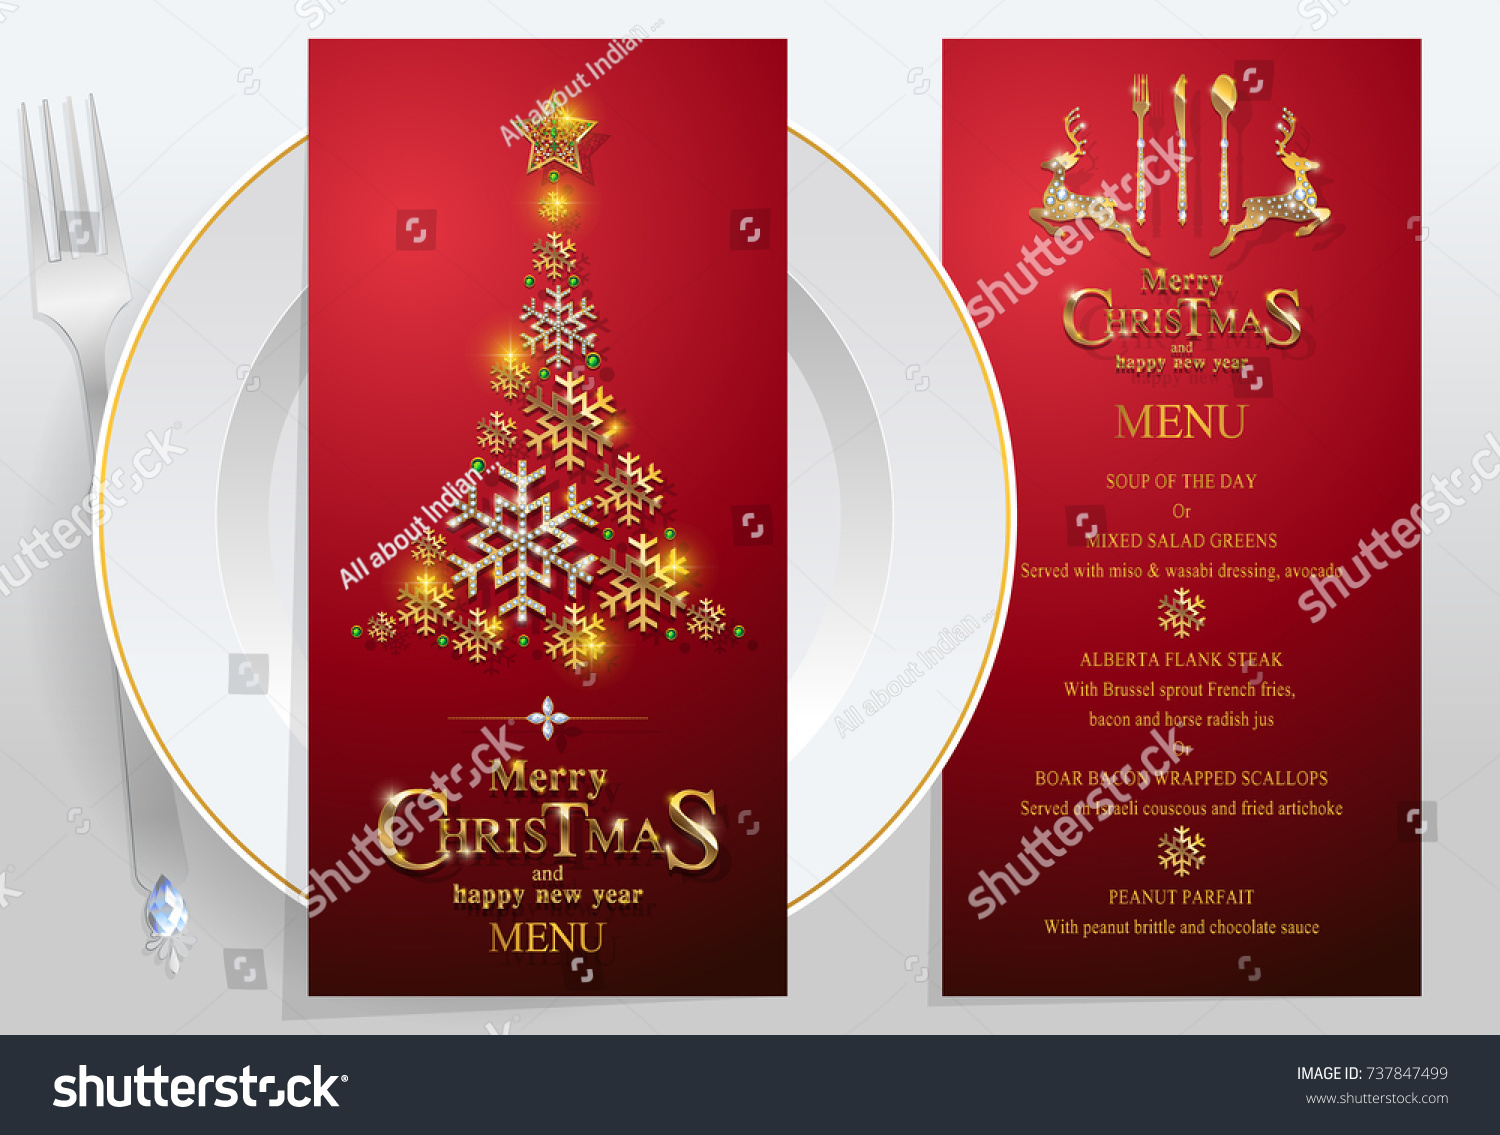 Christmas dinner vectors, photos and psd files | free download.